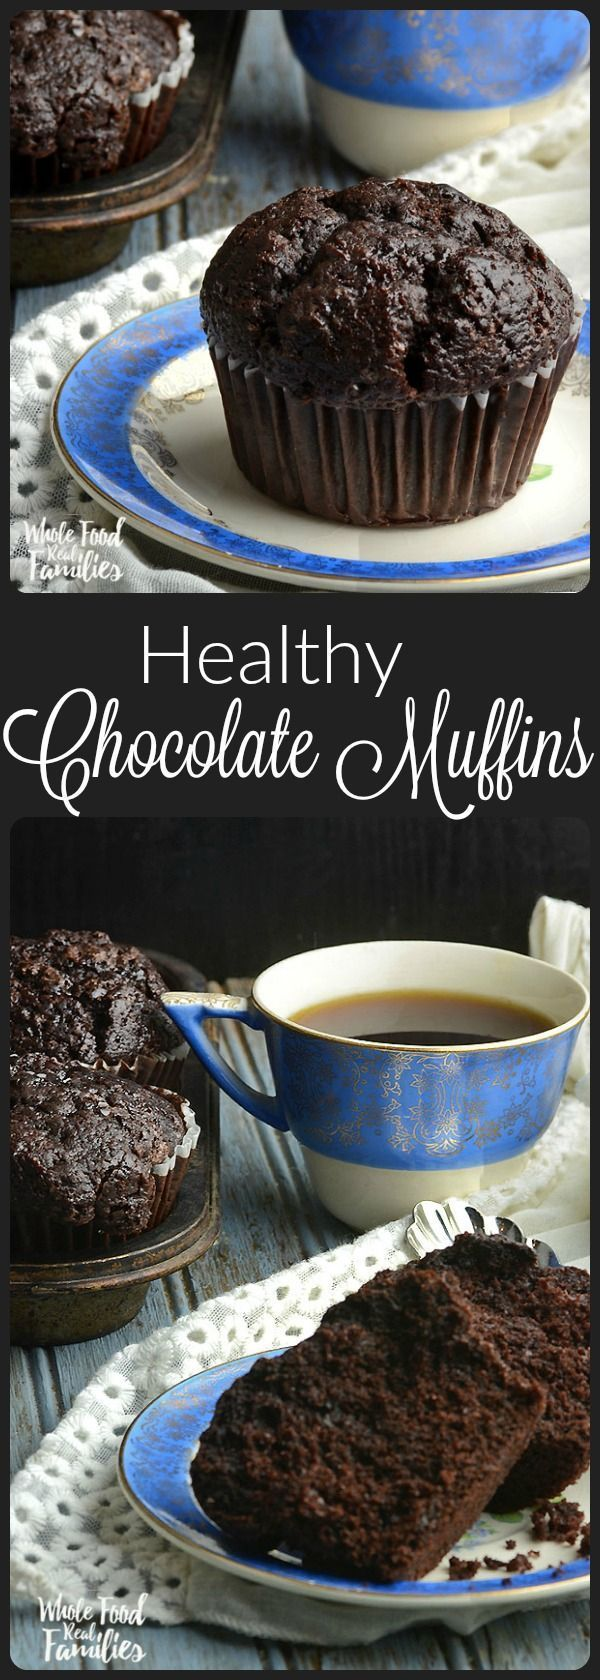 These Healthy Chocolate Muffins help you eat well and have your chocolate too! They are richly chocolate, so my kids love them. And healthy enough that I can actually serve them for breakfast with no guilt! Just a tip: these freeze great! Just thaw them in the fridge for a quick breakfast or the lunchbox!  /wholefoodrealfa/